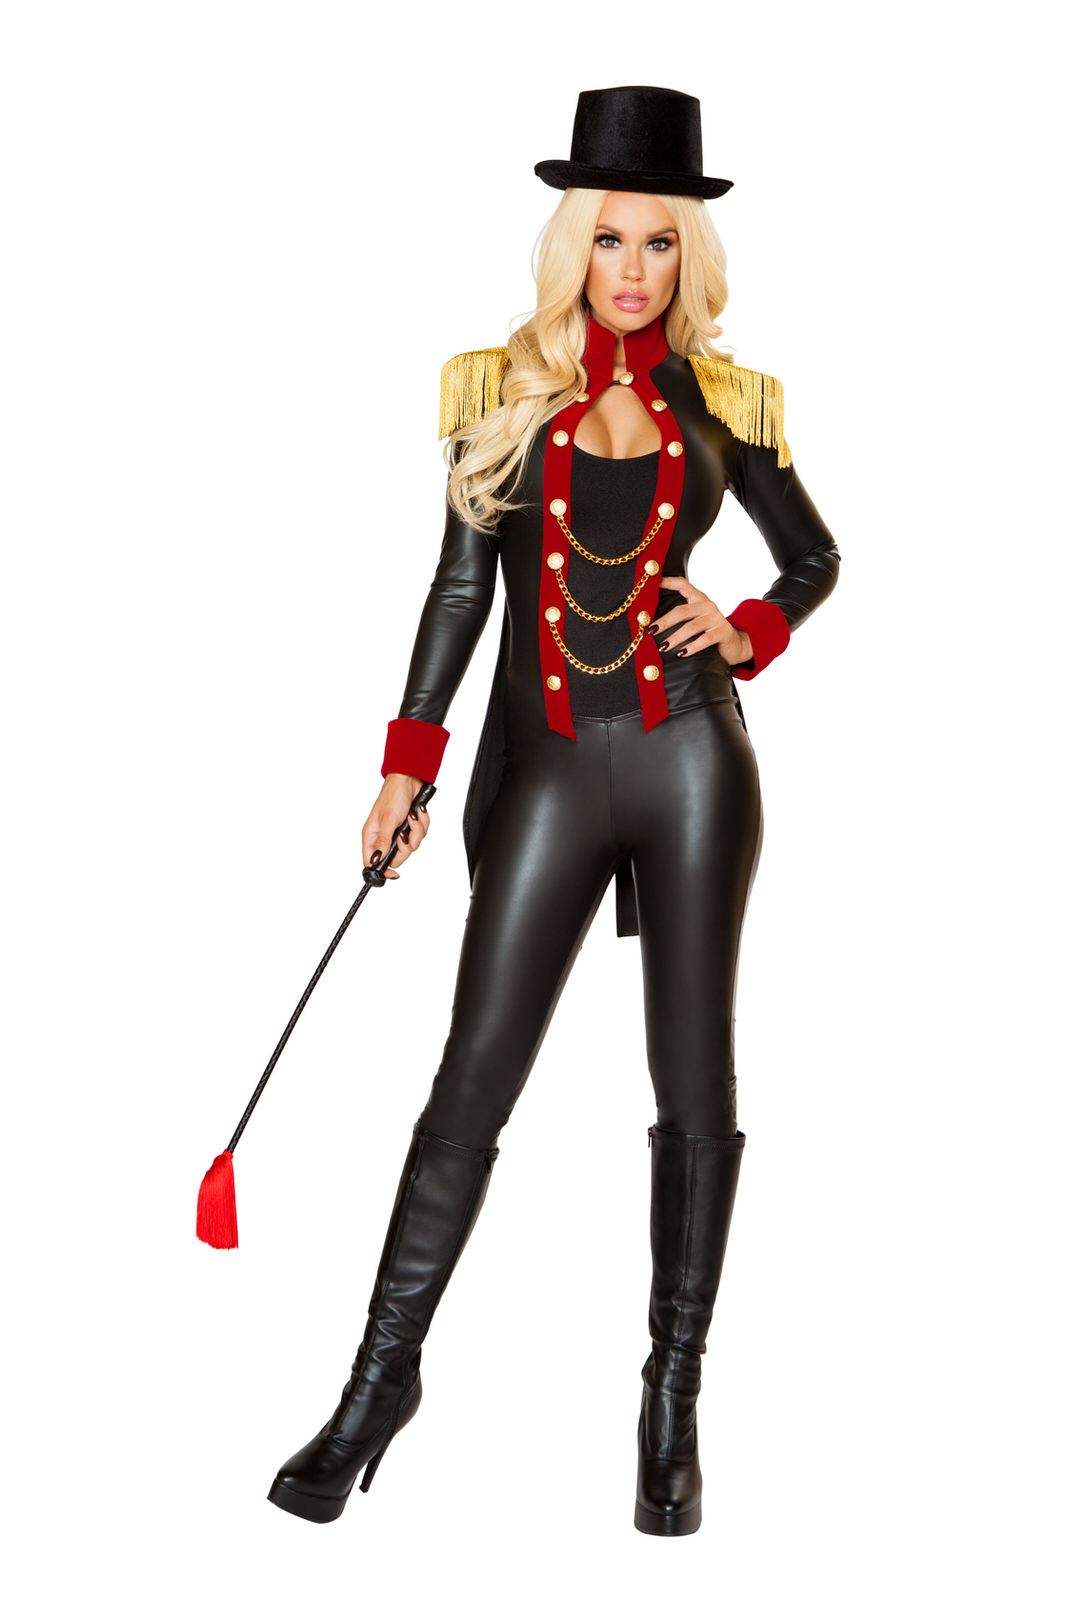 Adult Circus Ringleader Woman Costume ...  sc 1 st  The Costume Land & Adult Circus Ringleader Woman Costume | $113.99 | The Costume Land